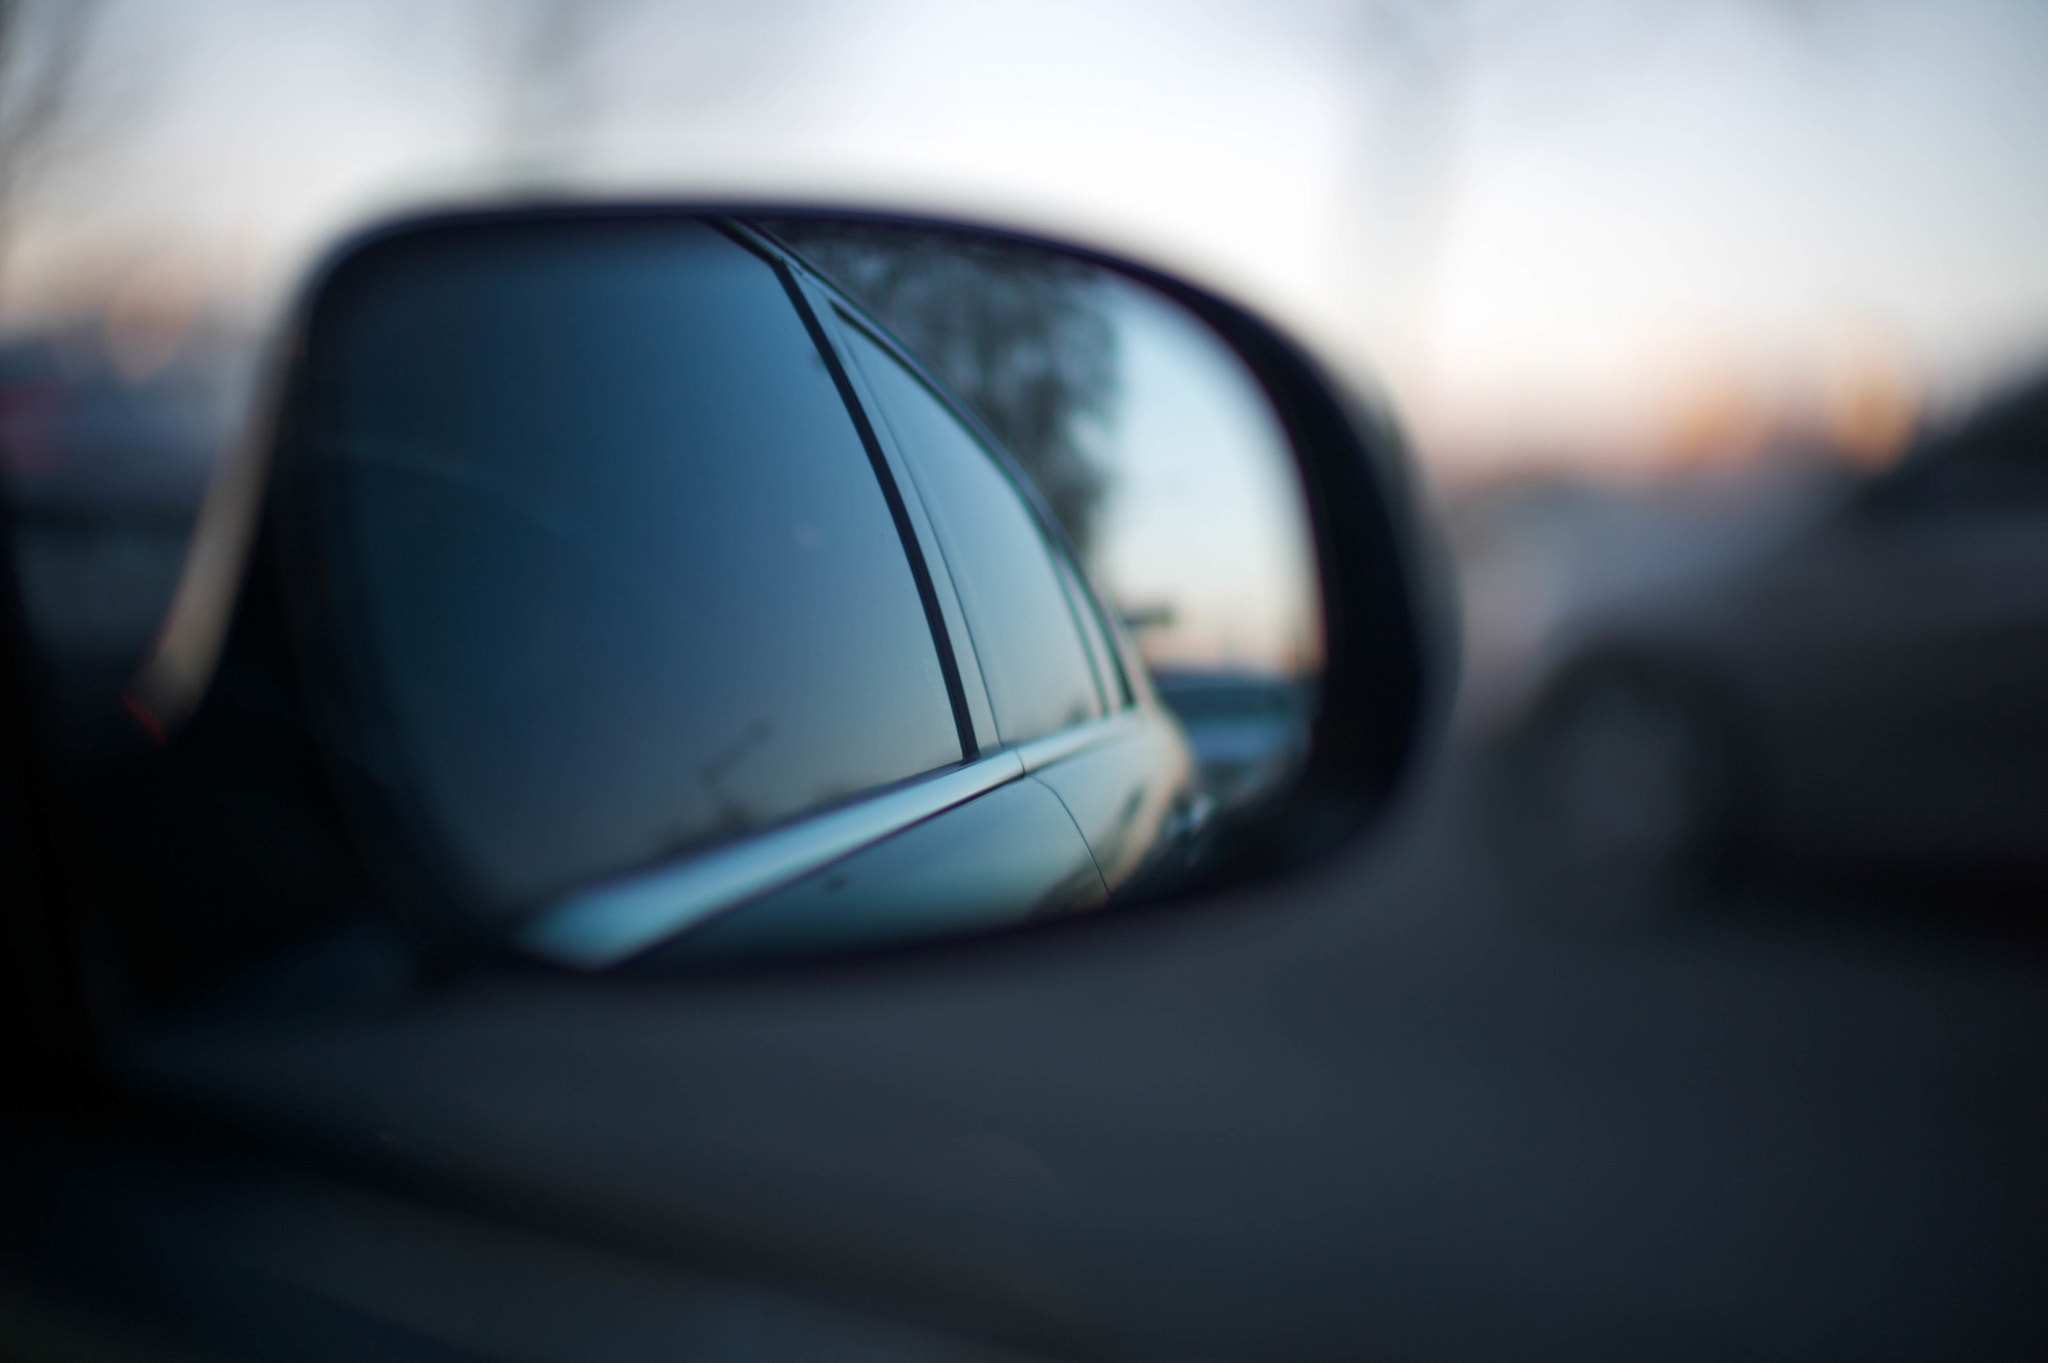 Photograph Closer than they Appear by Tem Erdenebat on 500px